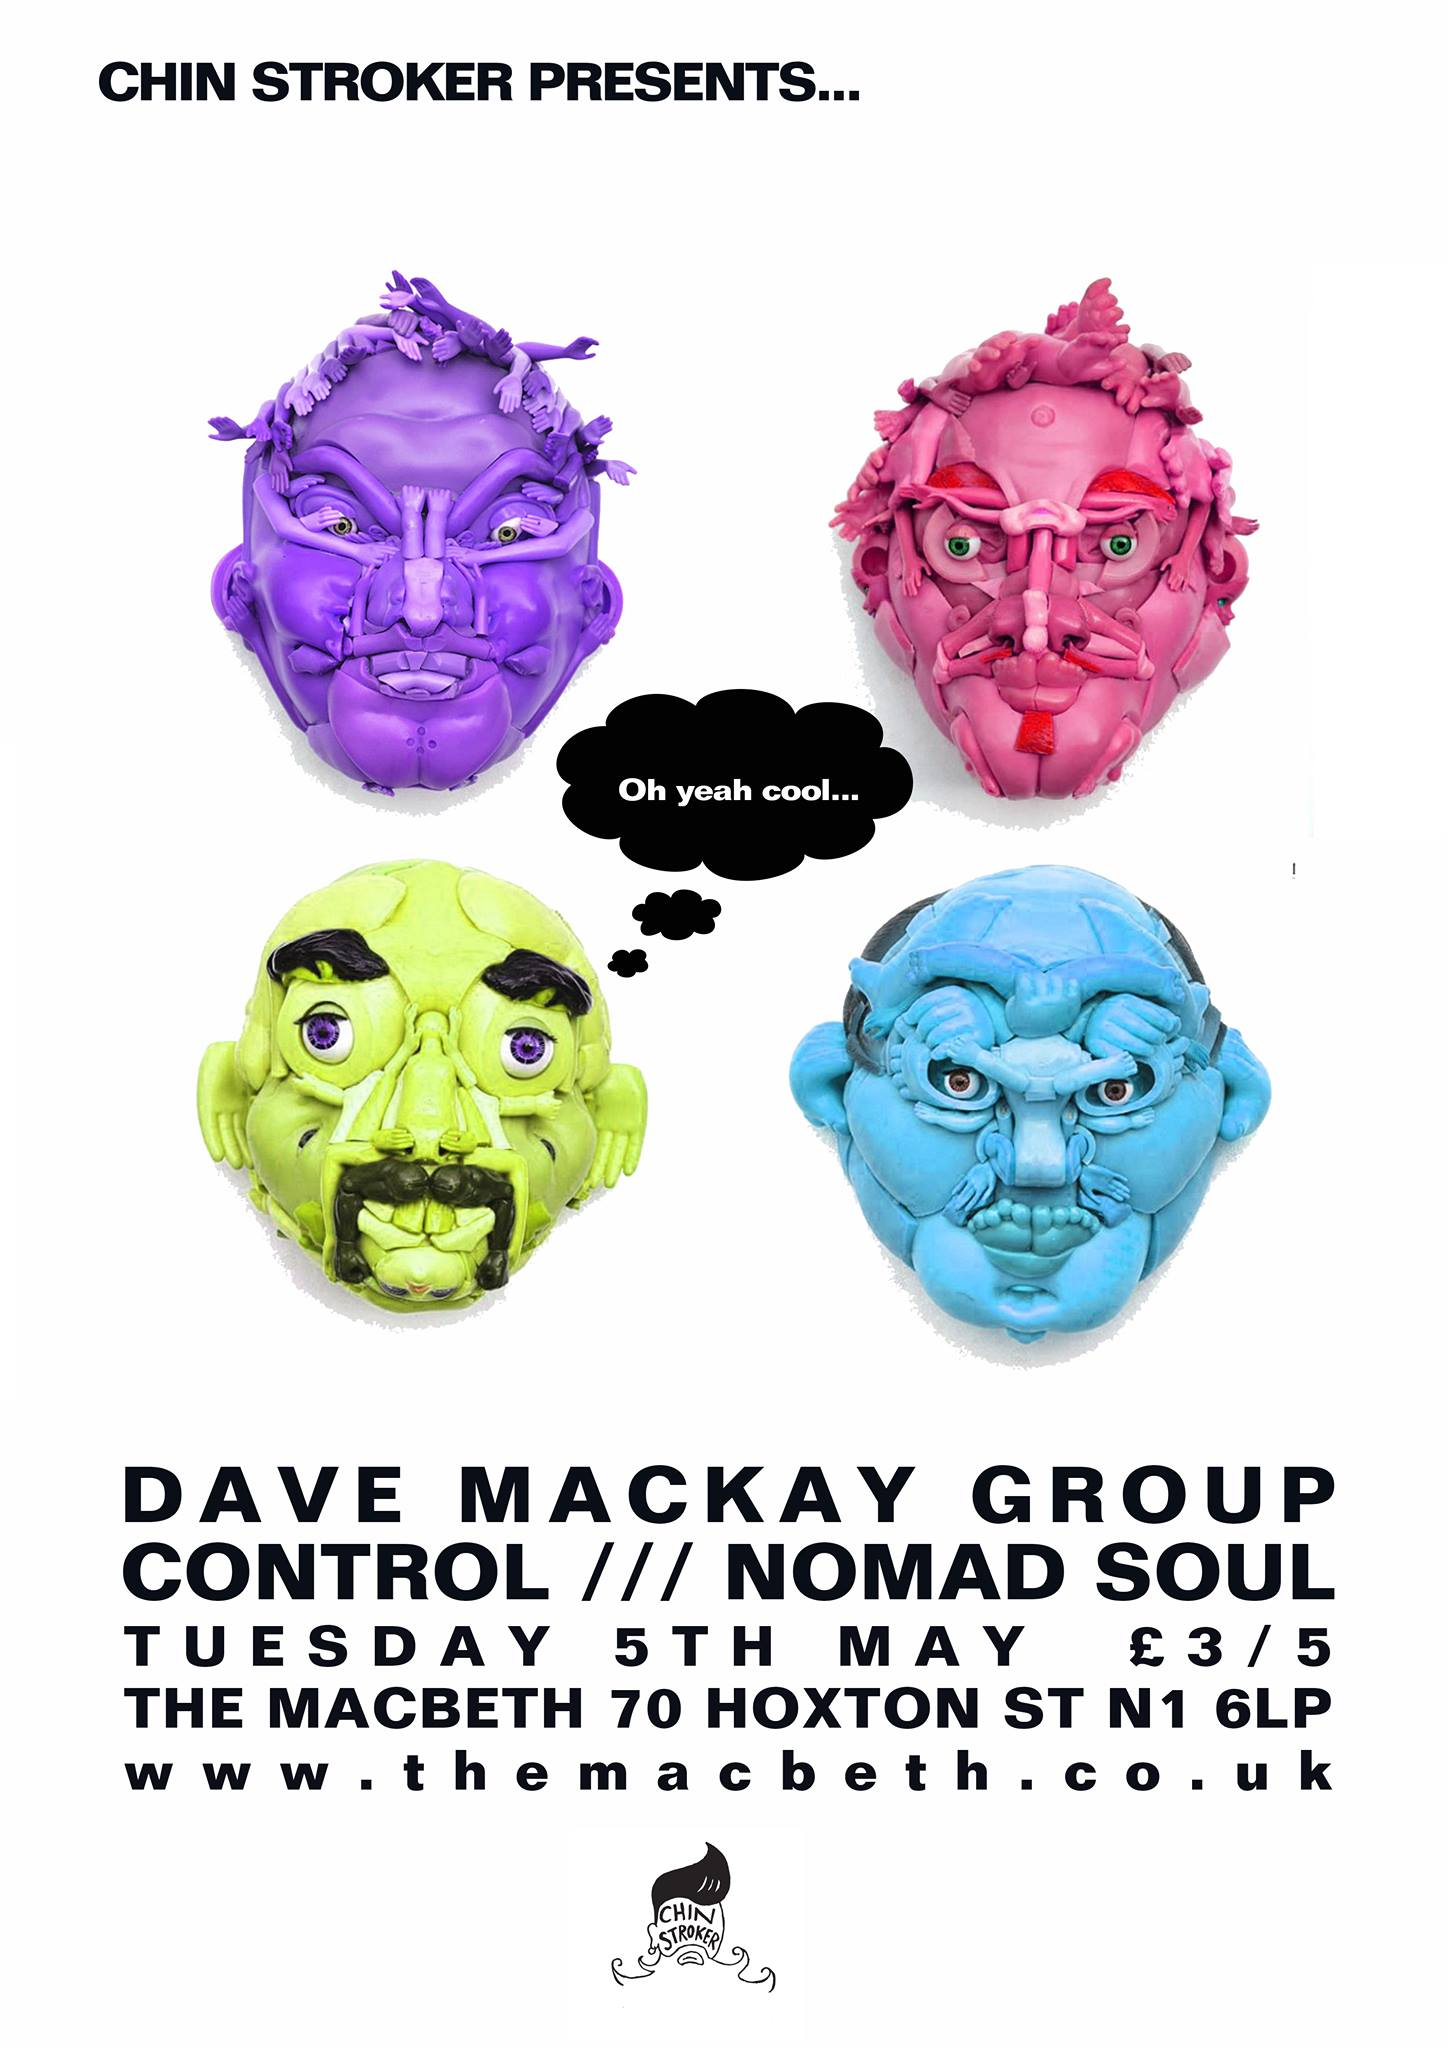 Chin Stroker Presents...    DAVE MACKAY GROUP   The Dave Mackay group hit the road again with a European tour which takes in UK, France, Germany, Belgium, Netherlands, Denmark, Sweden, Czech Republic and Switzerland. Playing shows and running Workshops/Clinics in the towns they play, the tour promises to leave the world a better place for it.    In support we have    NOMAD SOUL -  http://www.nomadsoulcollective.com/   + CONTROL    £3/£5 OTD    TICKETS -  https://billetto.co.uk/en/events/cs-dave-mackay-group-control-nomad-soul